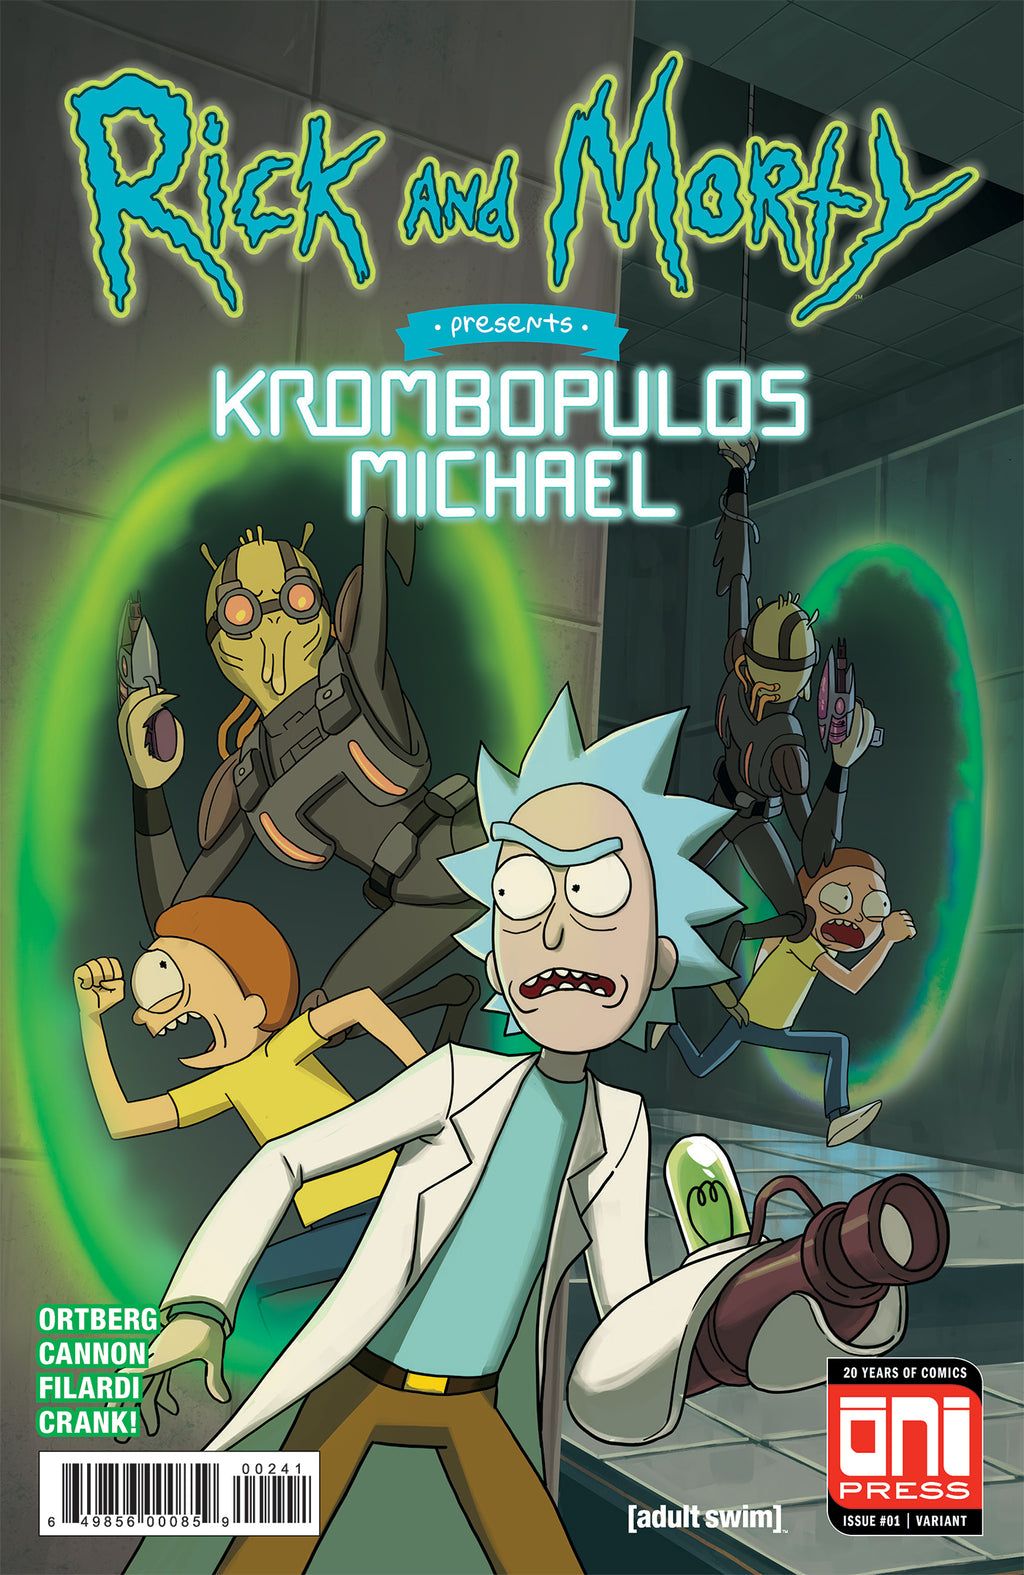 Rick and Morty Presents: Krombopulos Michael #1 - Gaming Convention Variant